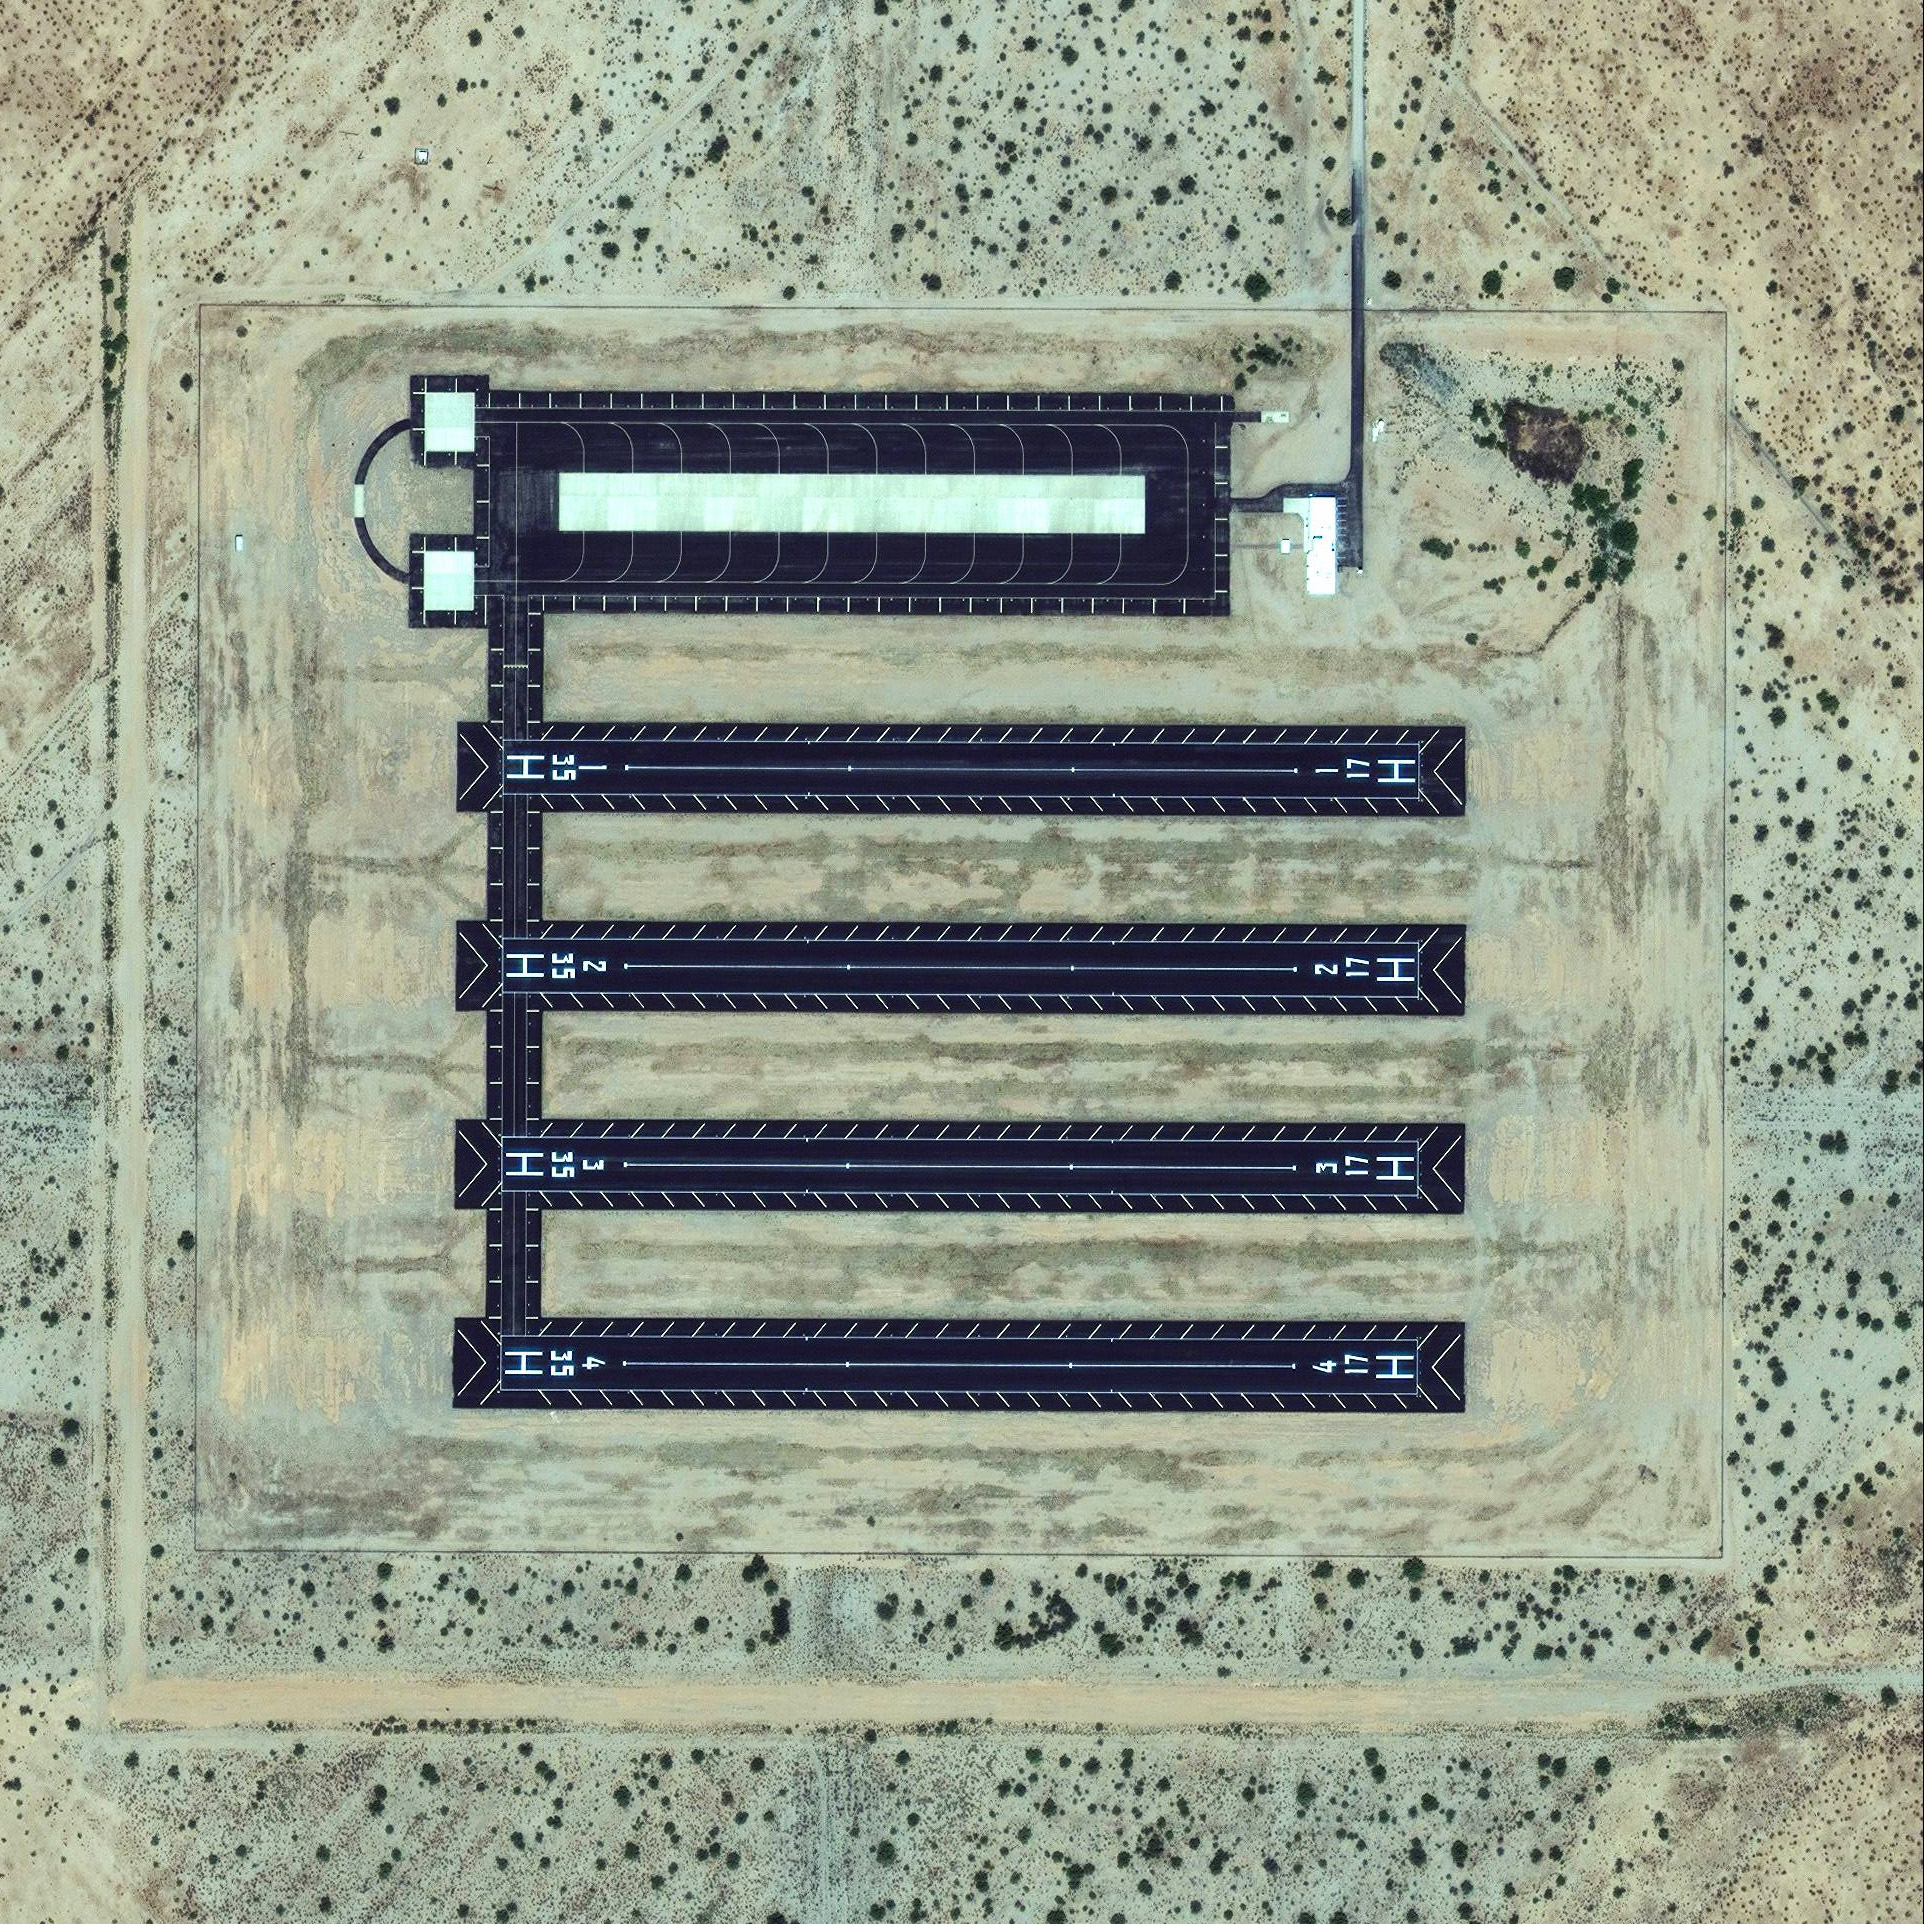 8/29/2015  Landing strips  Eloy, Arizona, USA  32.663367, -111.487618    Multiple landing strips are visible in Eloy, Arizona, USA. Can anyone figure out what they are used for? It's a mystery to us too!